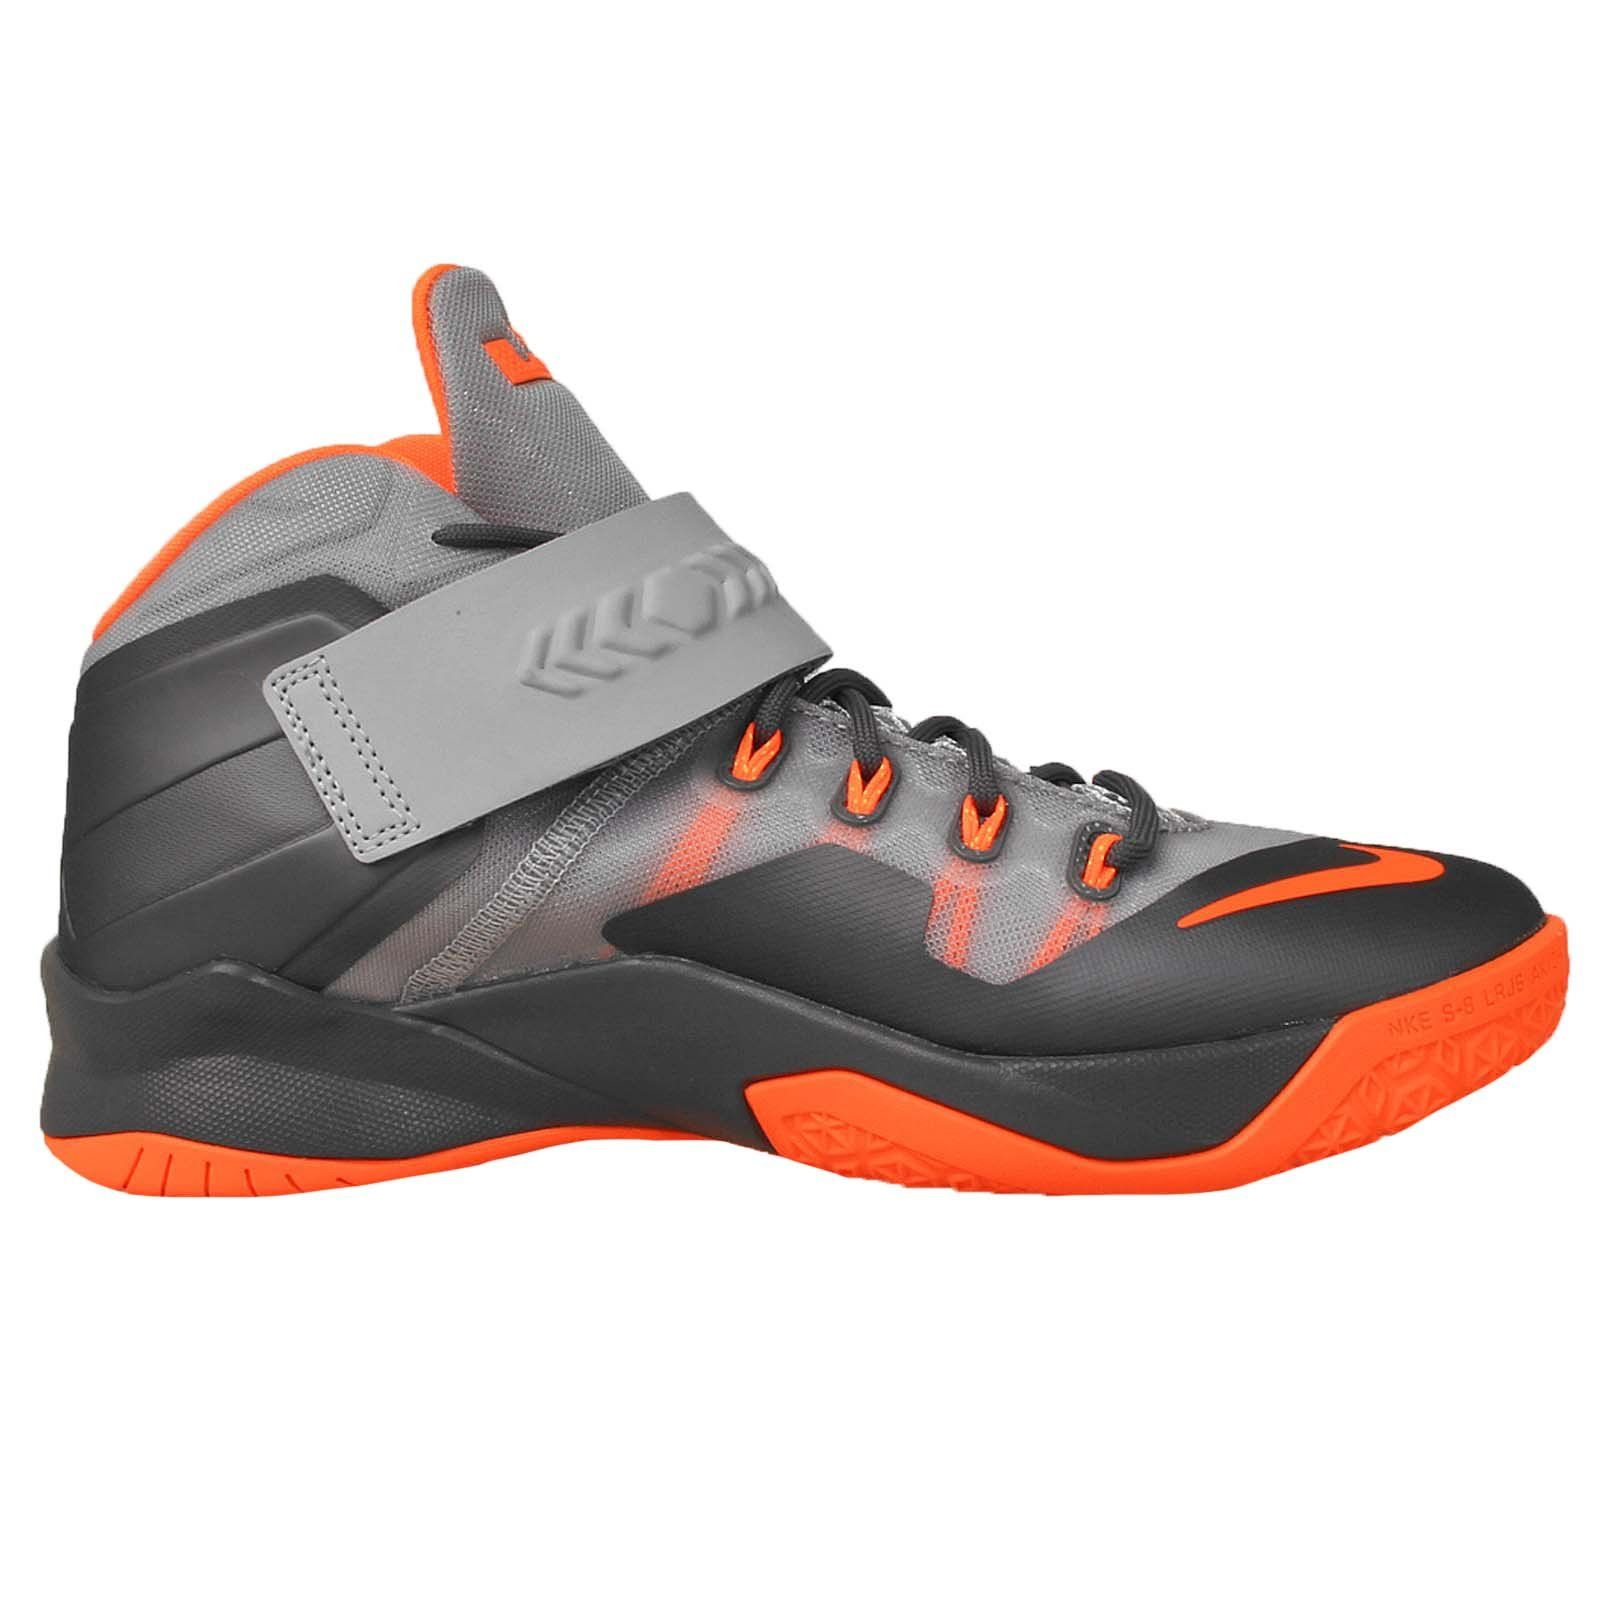 pretty nice 29b38 3a70e Nike Soldier VIII GS 8 Lebron James Youth Basketball Shoes 653645-010 (4.5Y)